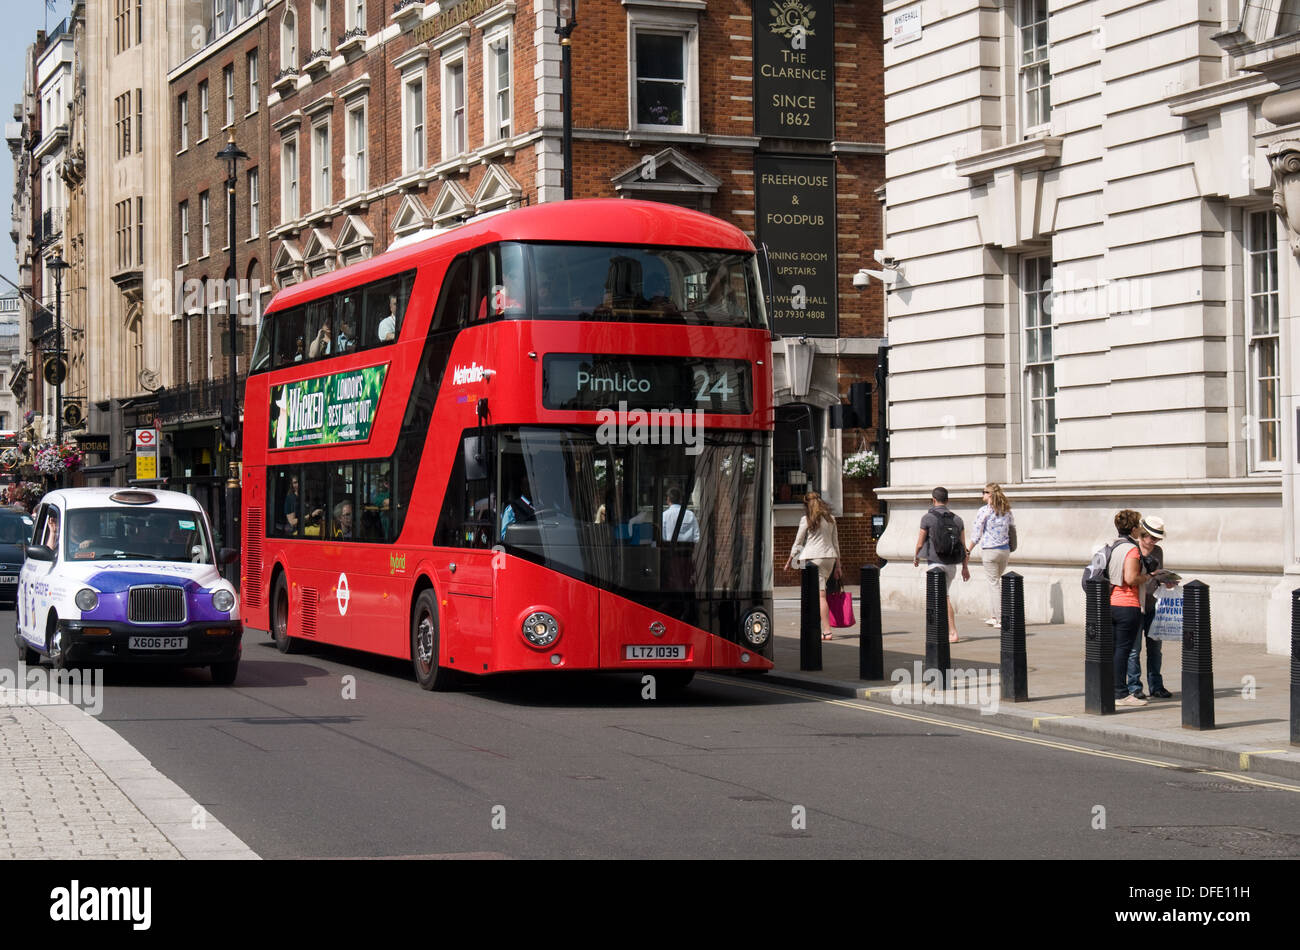 A London taxi passes one of the New buses for london in Whitehall on a sunny day. The buses have been nicked named Borismasters. - Stock Image